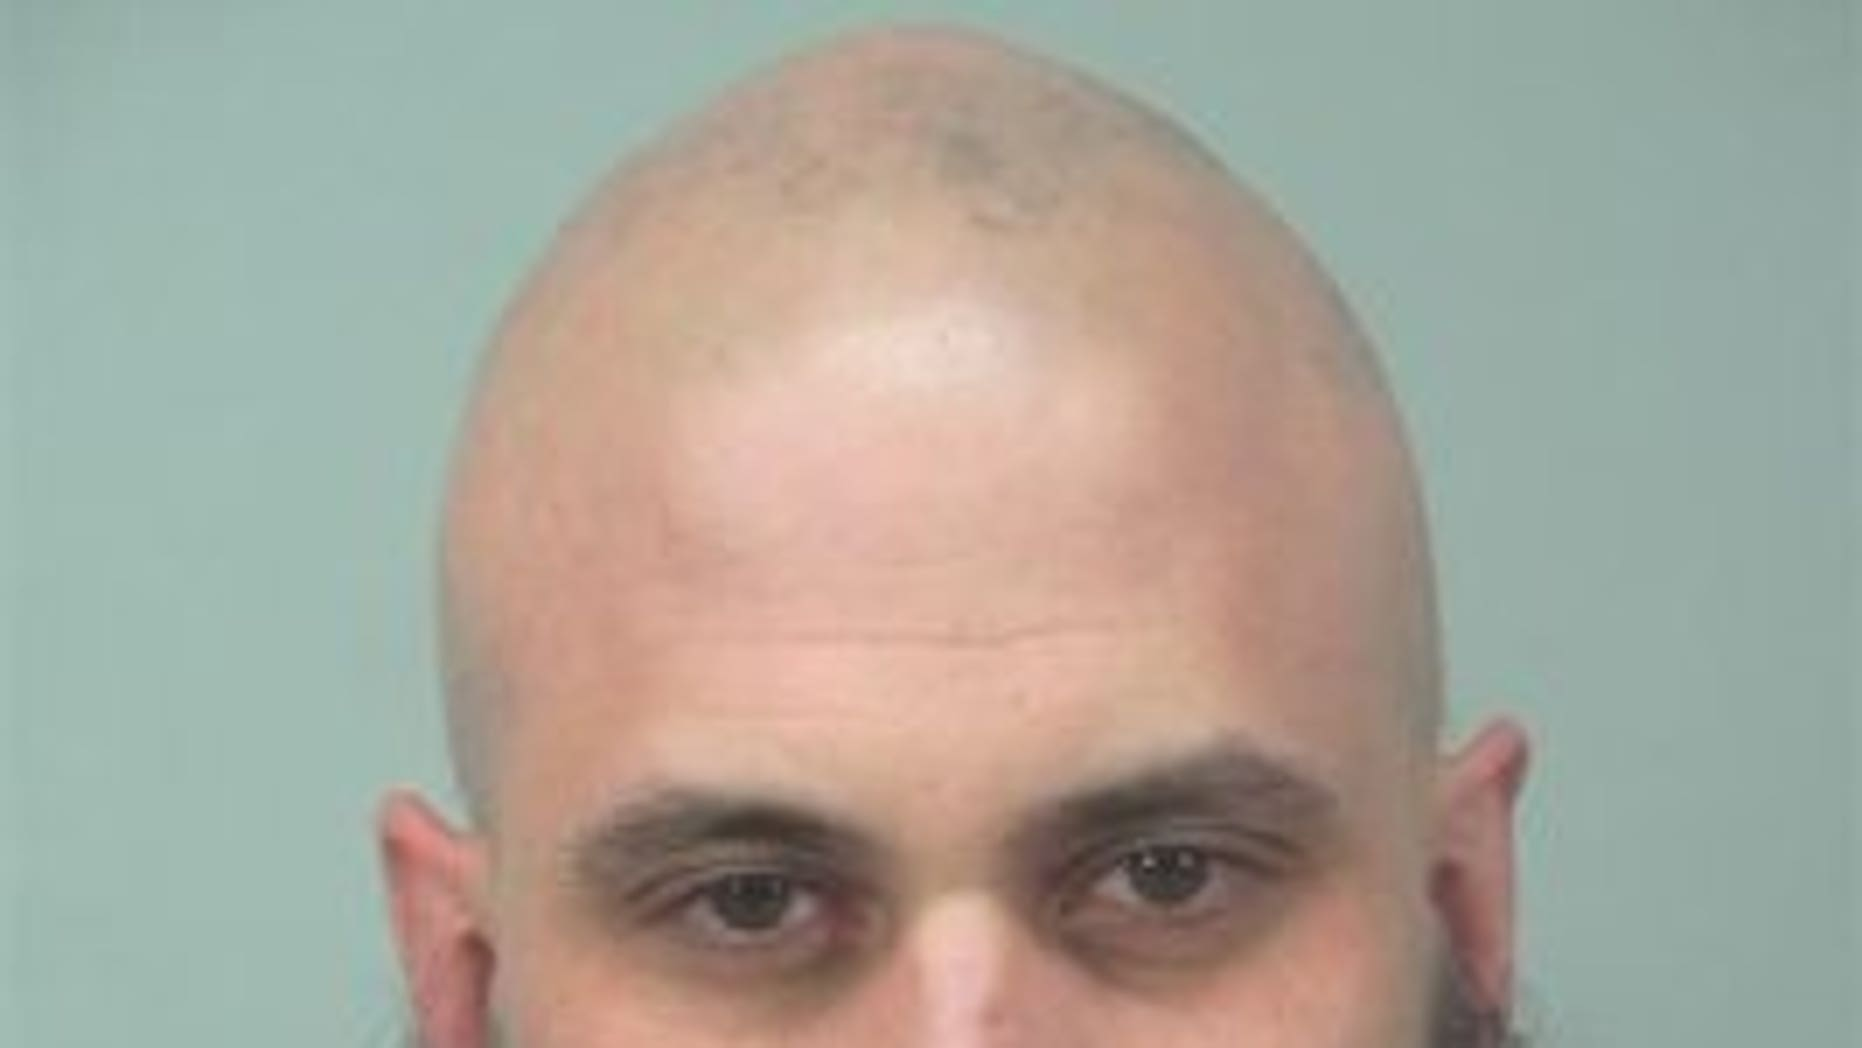 Jeremy Ryan, 30, attempted to acquire radioactive material as part of a murder plot, authorities say.